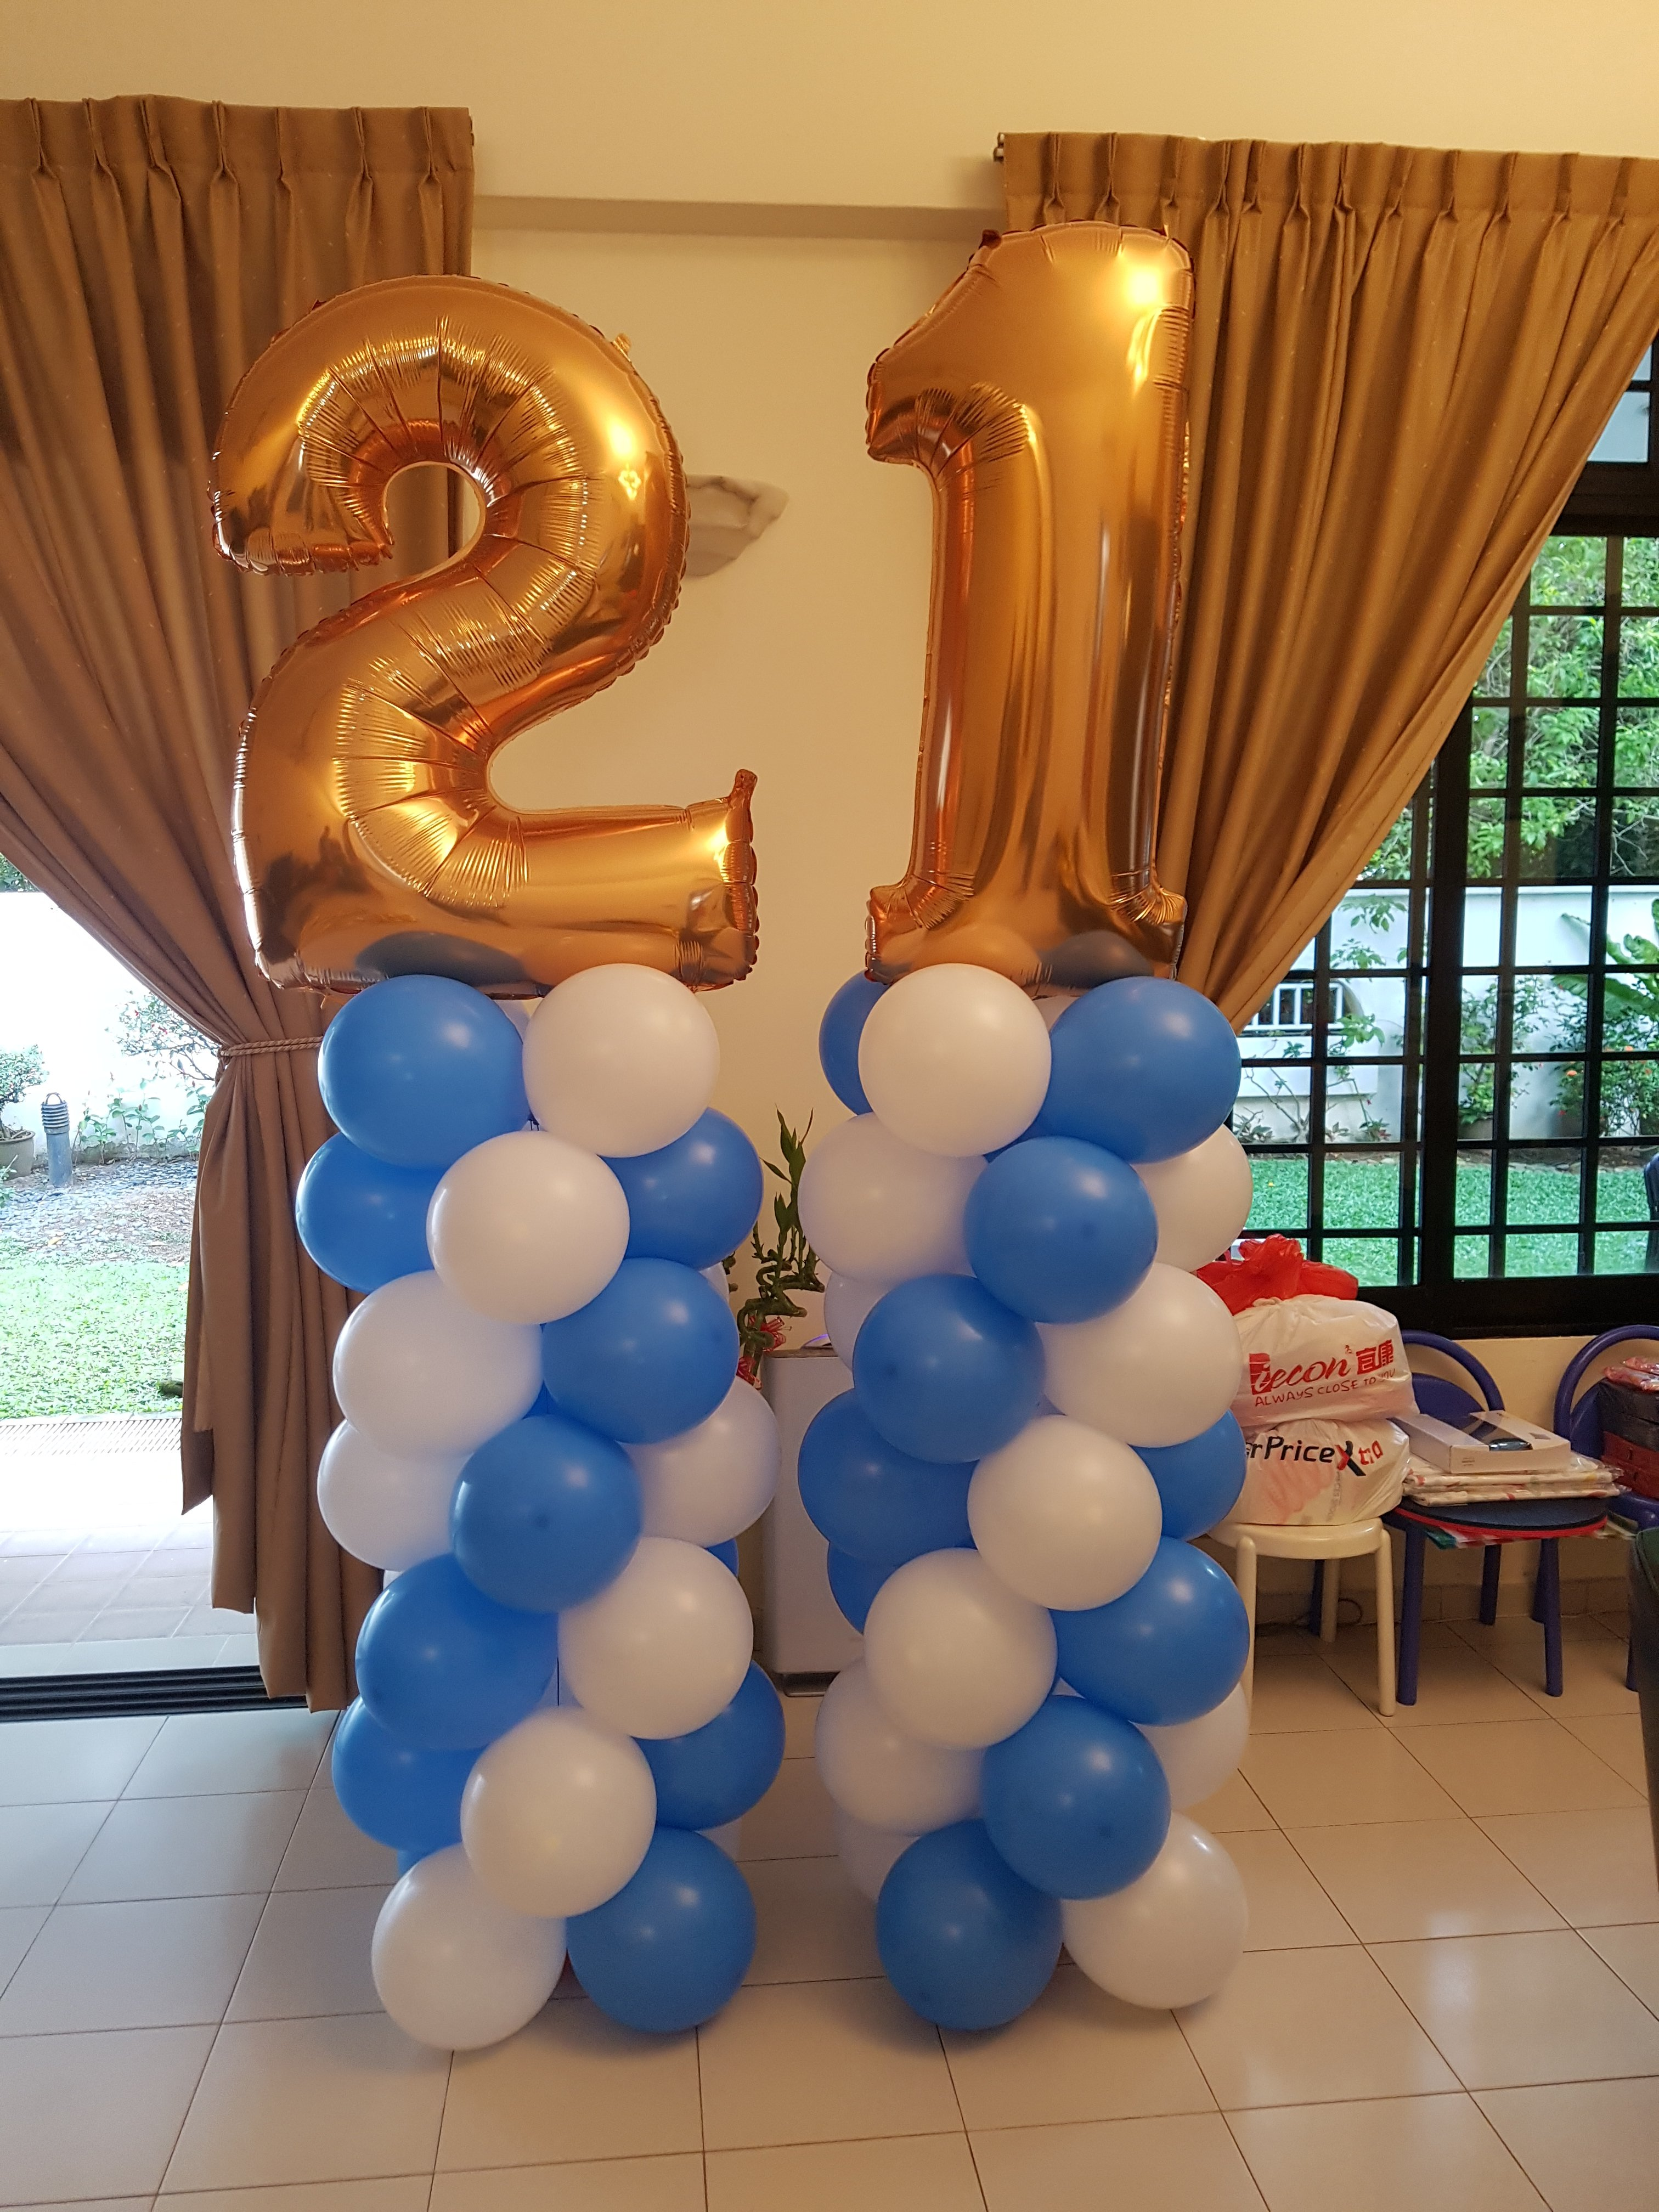 , Balloon Decorations for 21st birthday, Singapore Balloon Decoration Services - Balloon Workshop and Balloon Sculpting